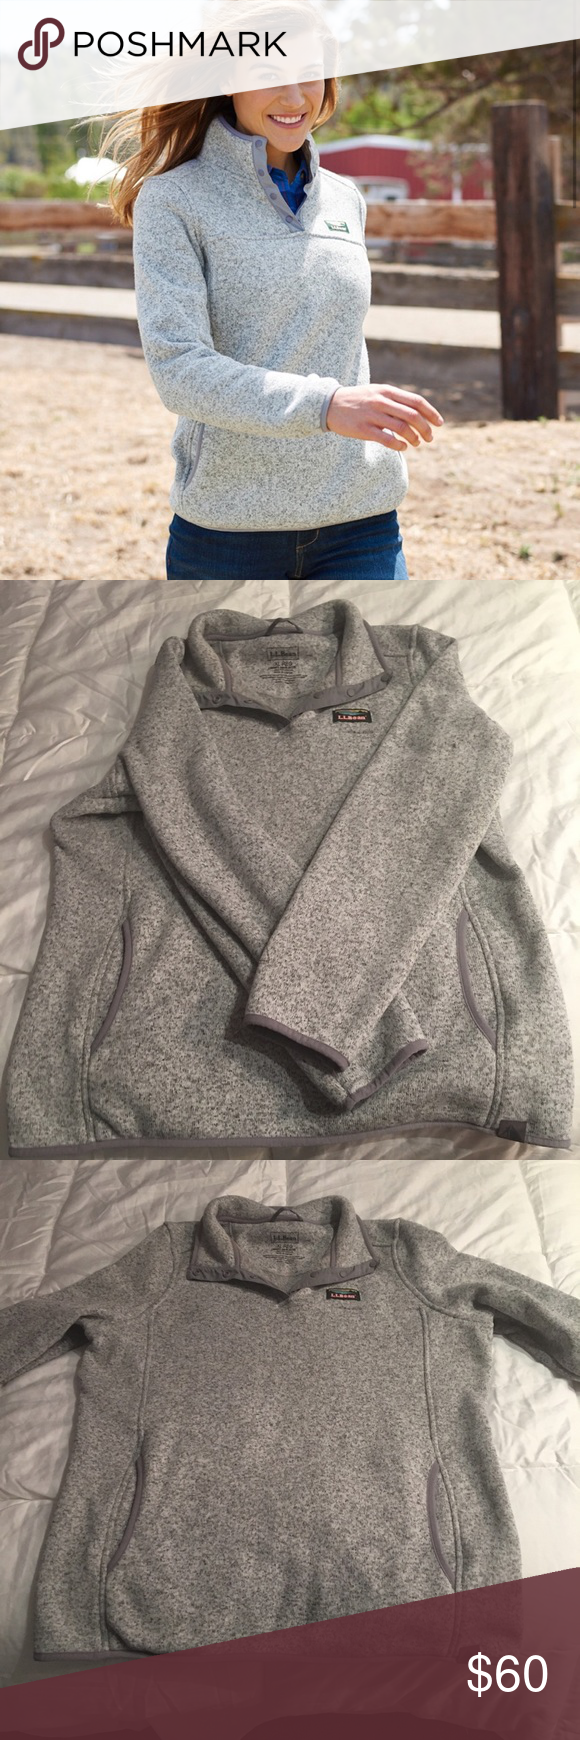 761d7e1670e53 LL Bean Sweater Fleece Pullover LL bean fleece pull over women's size extra  large. Very warm and comfy only worn once, in perfect condition!!